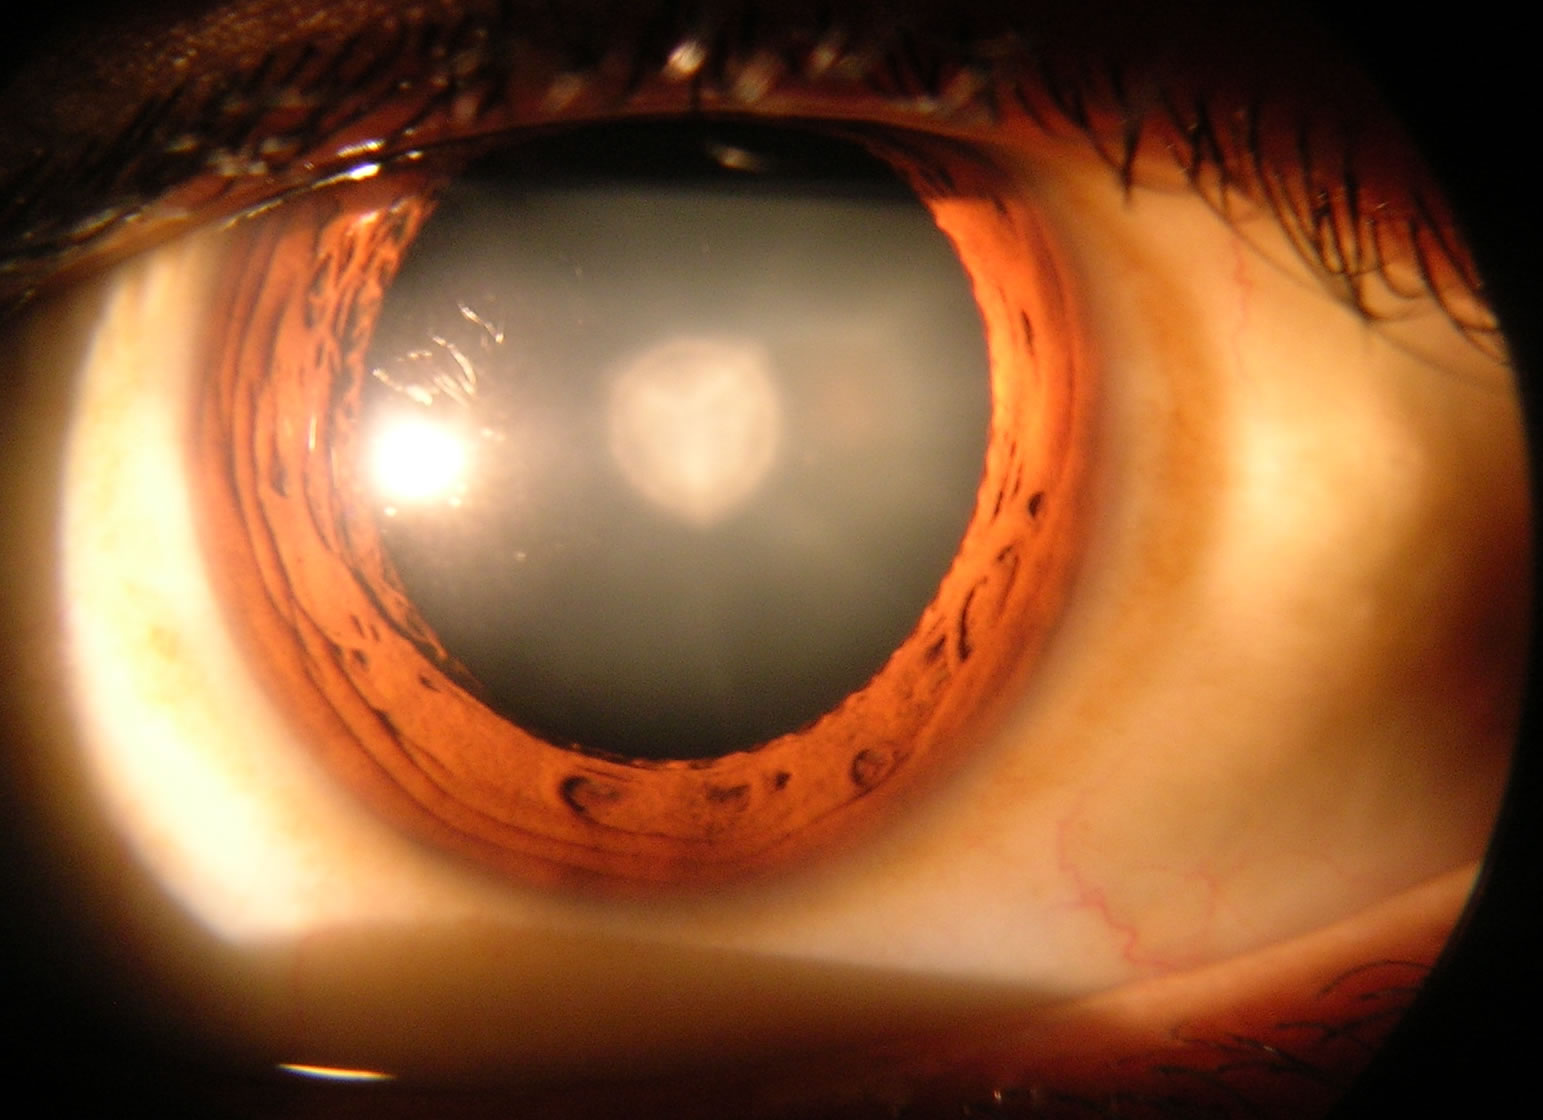 A cataract in a human eye